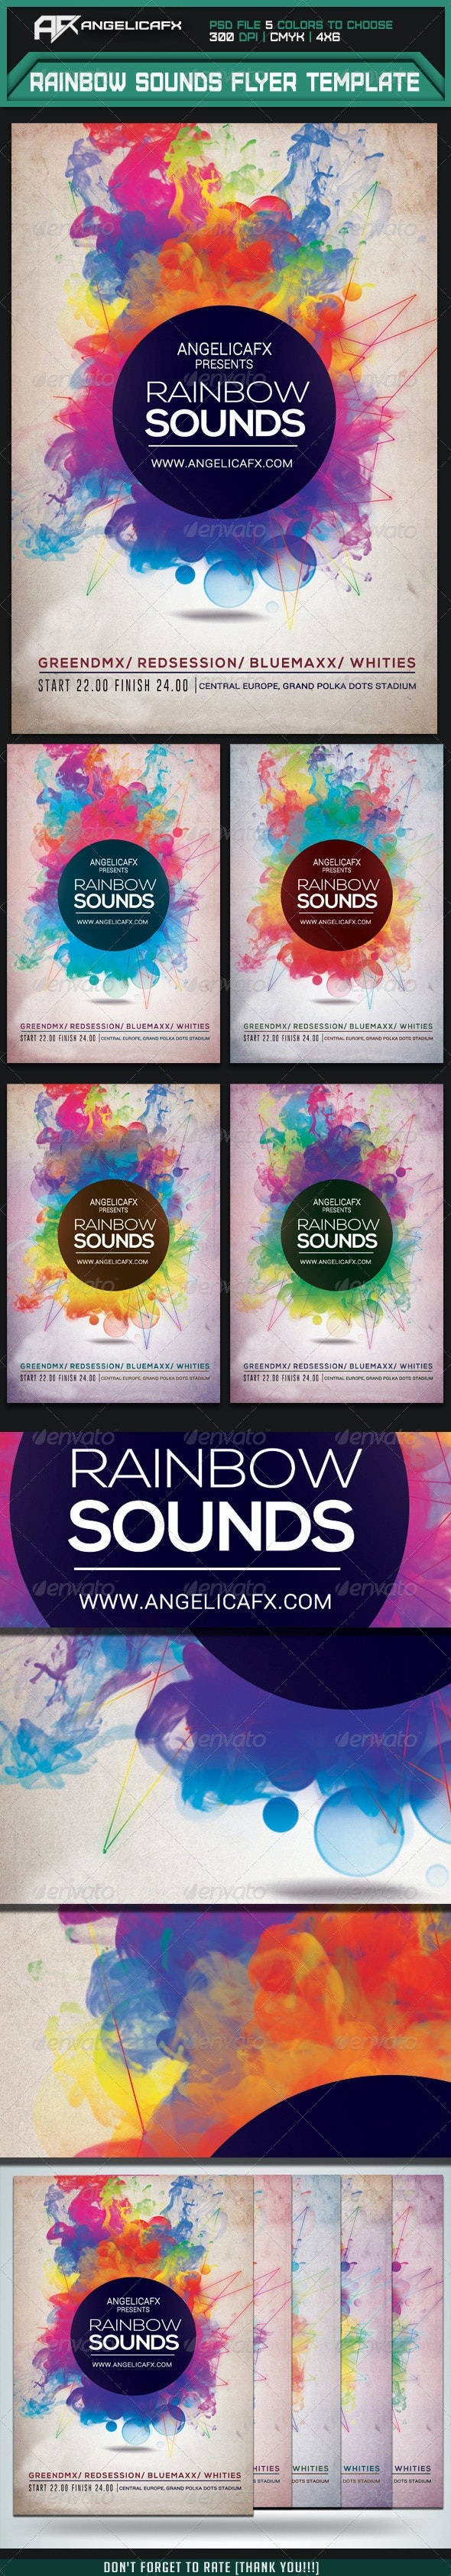 Rainbow Sounds Flyer Template - Events Flyers